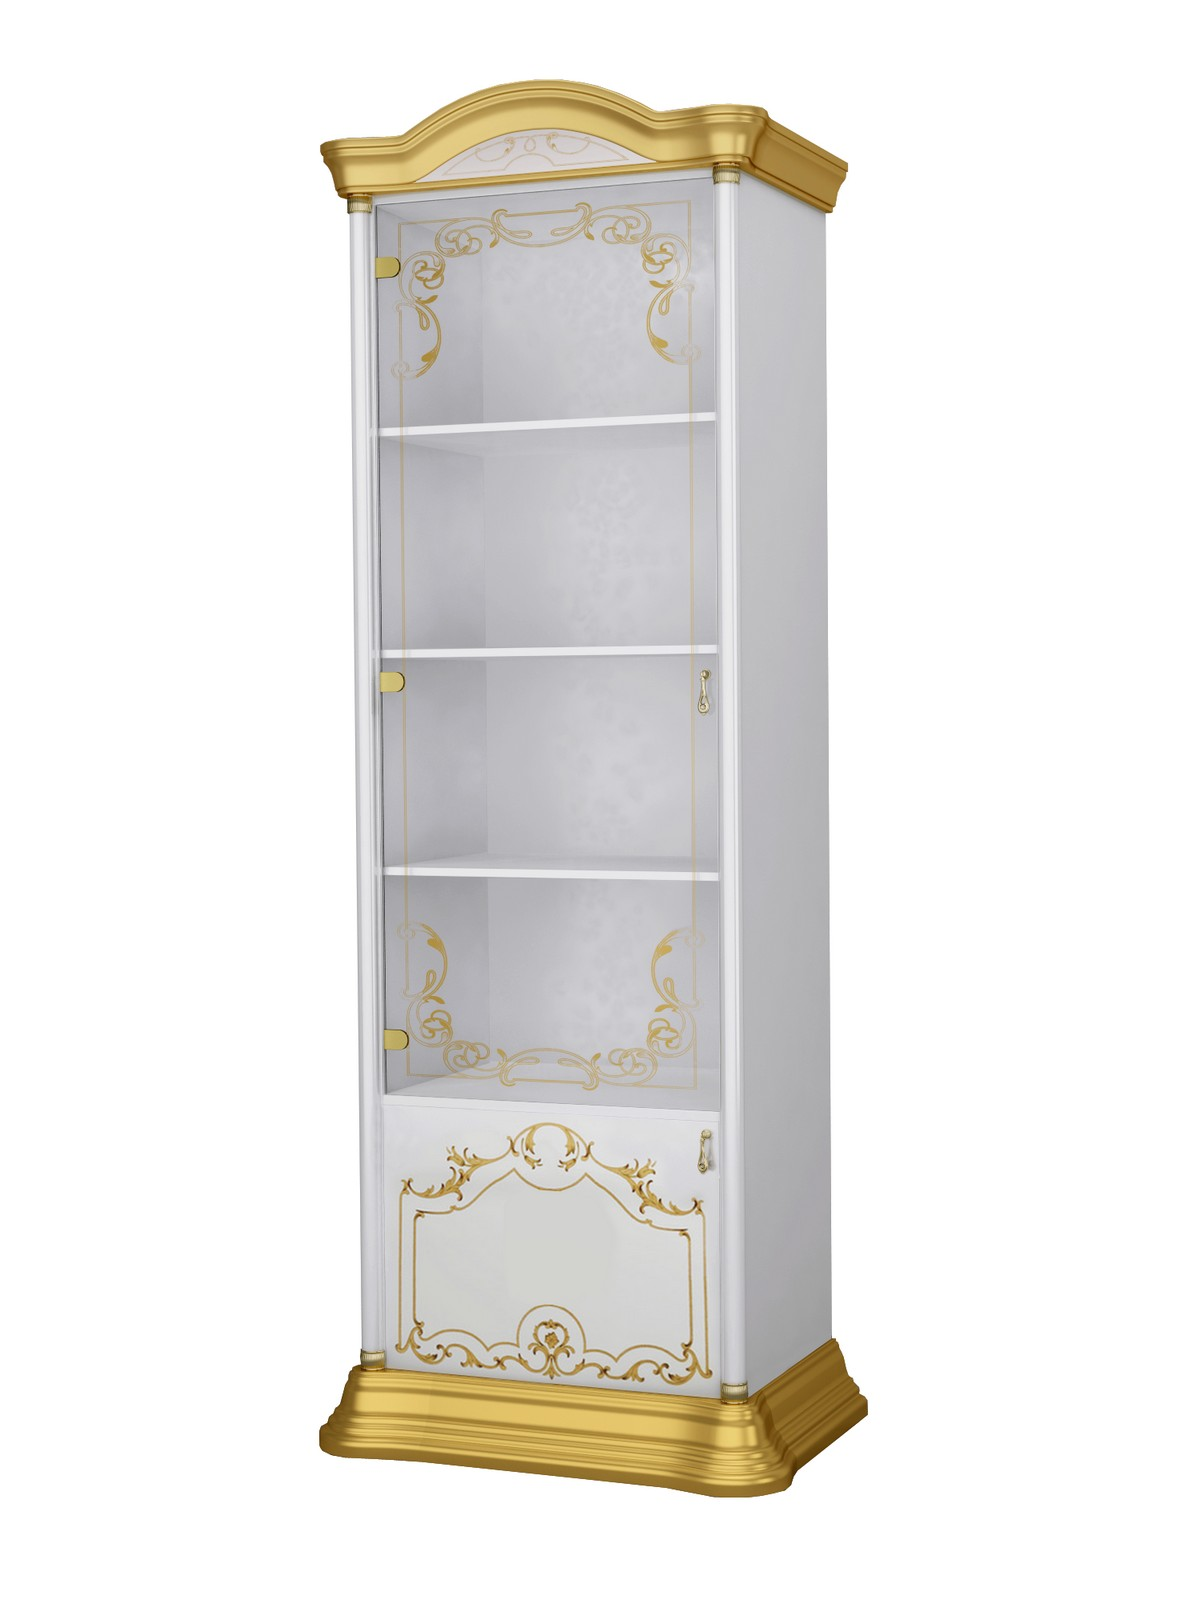 Barock Wohnwand Remo 2 in Weiss/Gold